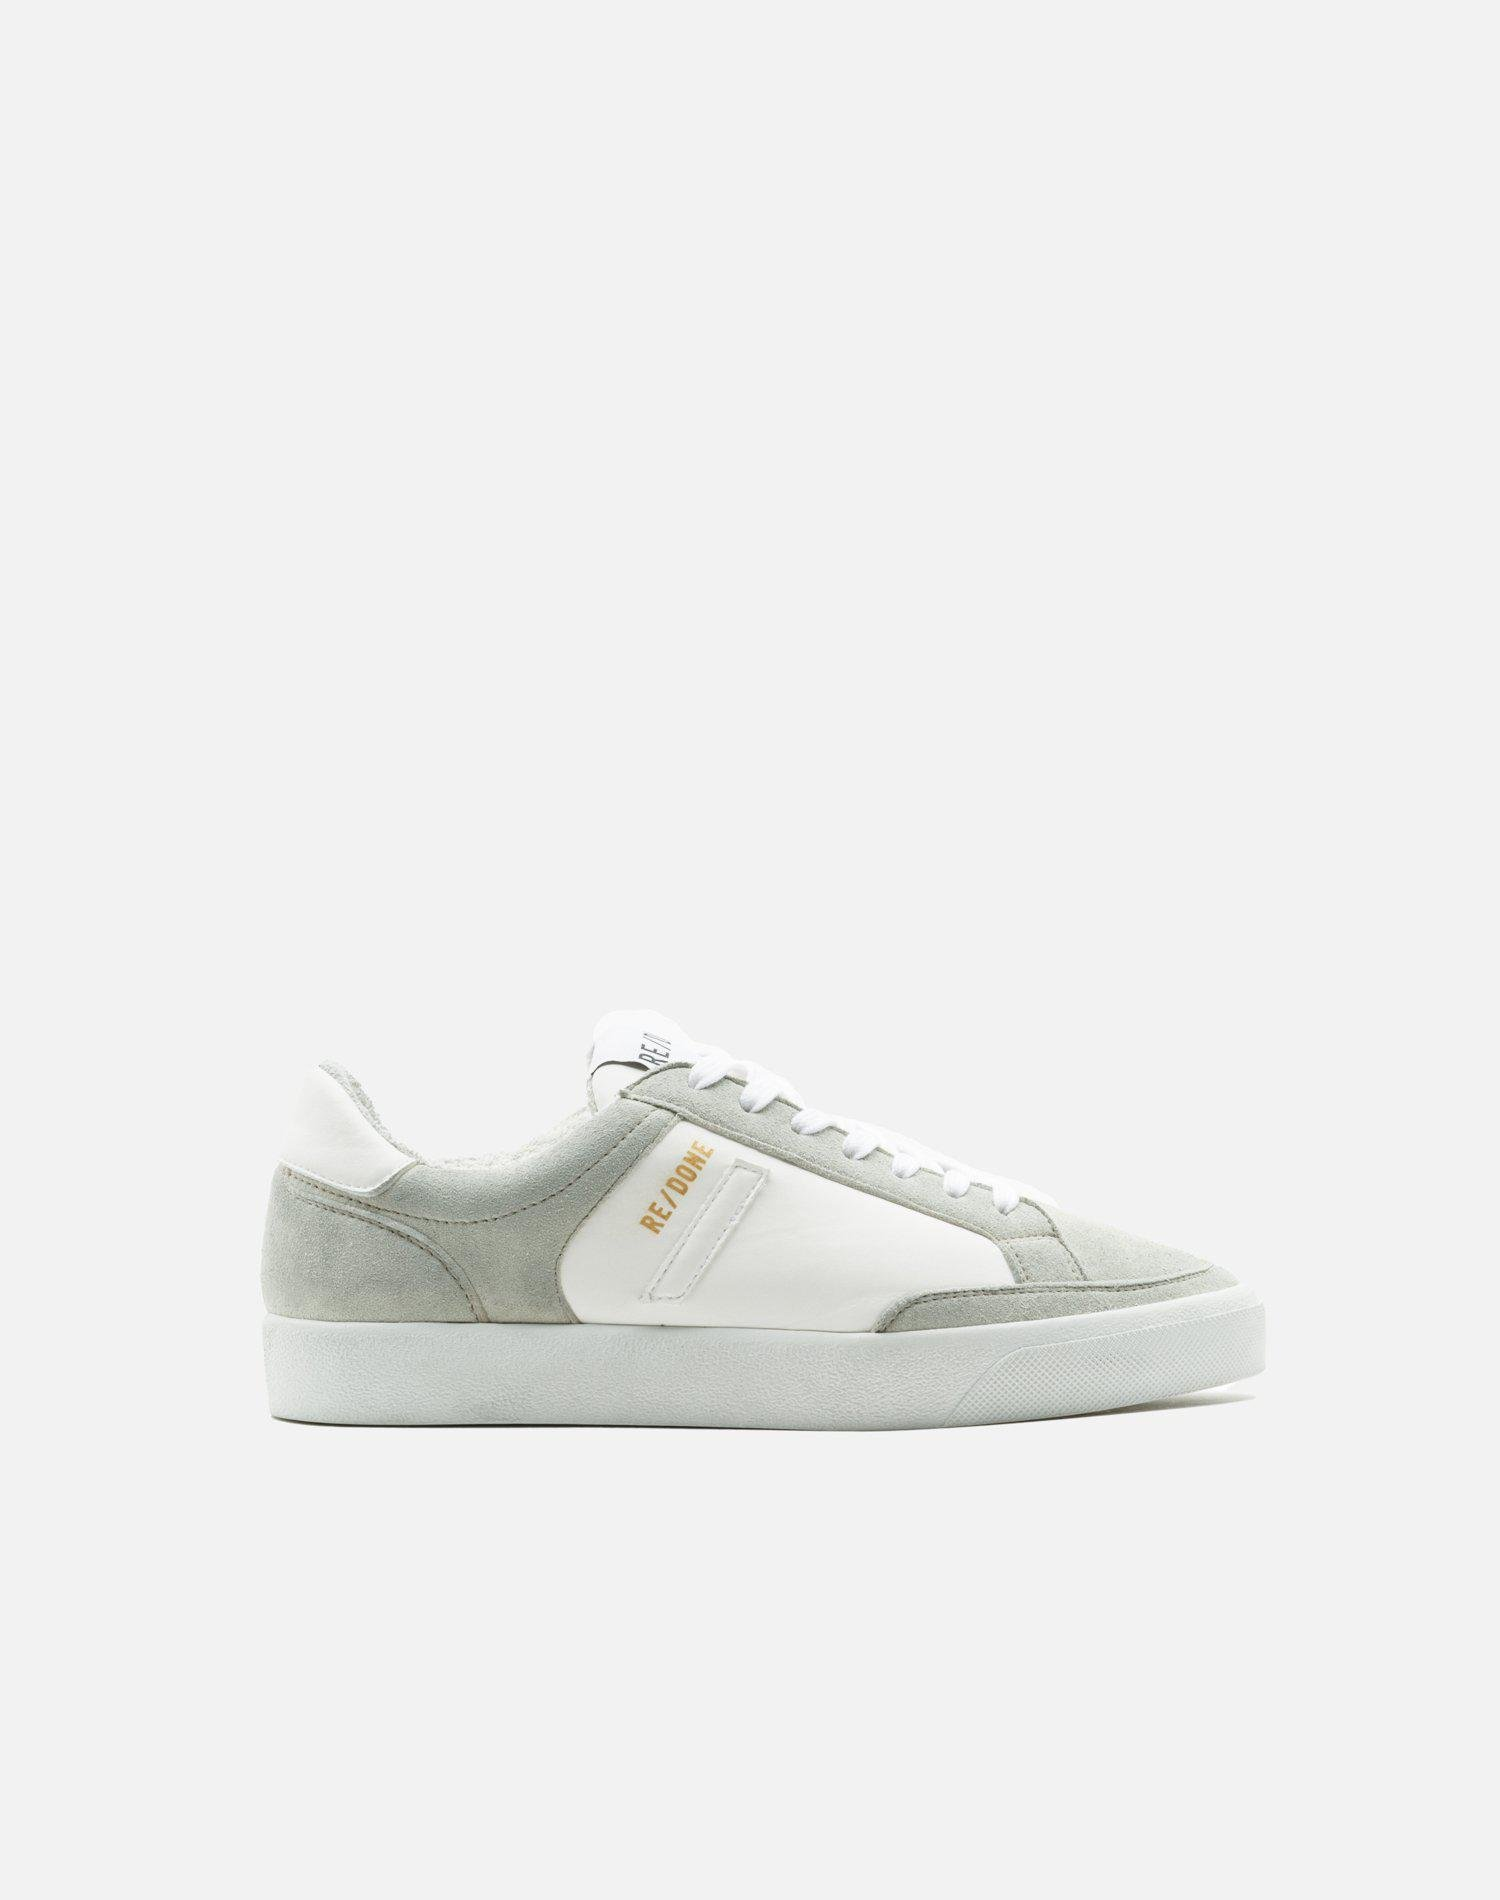 90s Sustainable Skate Shoe - White and White